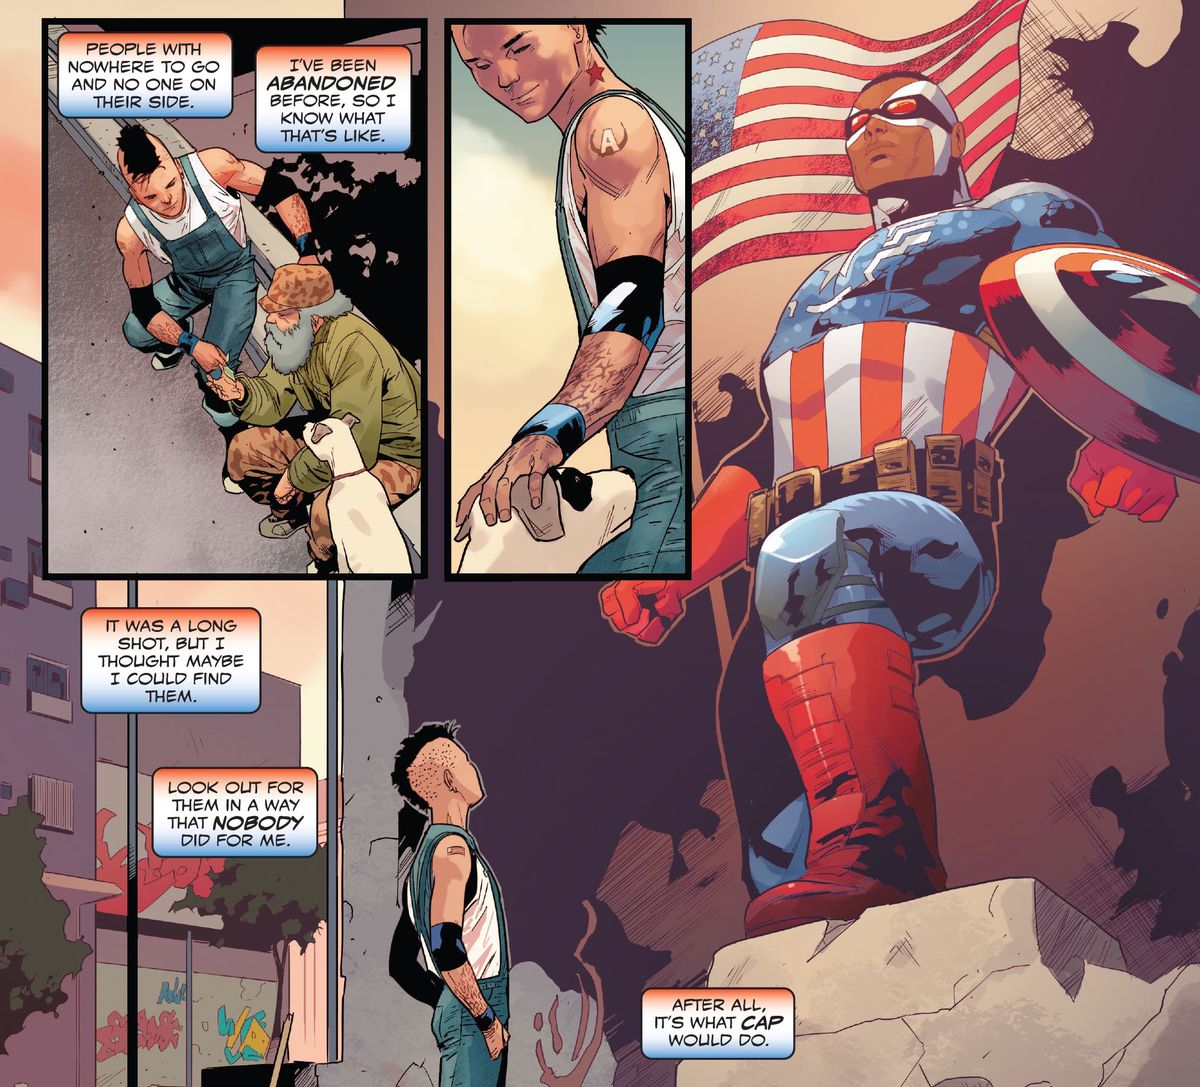 Aaron Fischer muses on how he helps people because it's what Captain America would do, as he looks up at a mural of Sam Wilson in his Captain America costume in United States of Captain America #1 (2021).